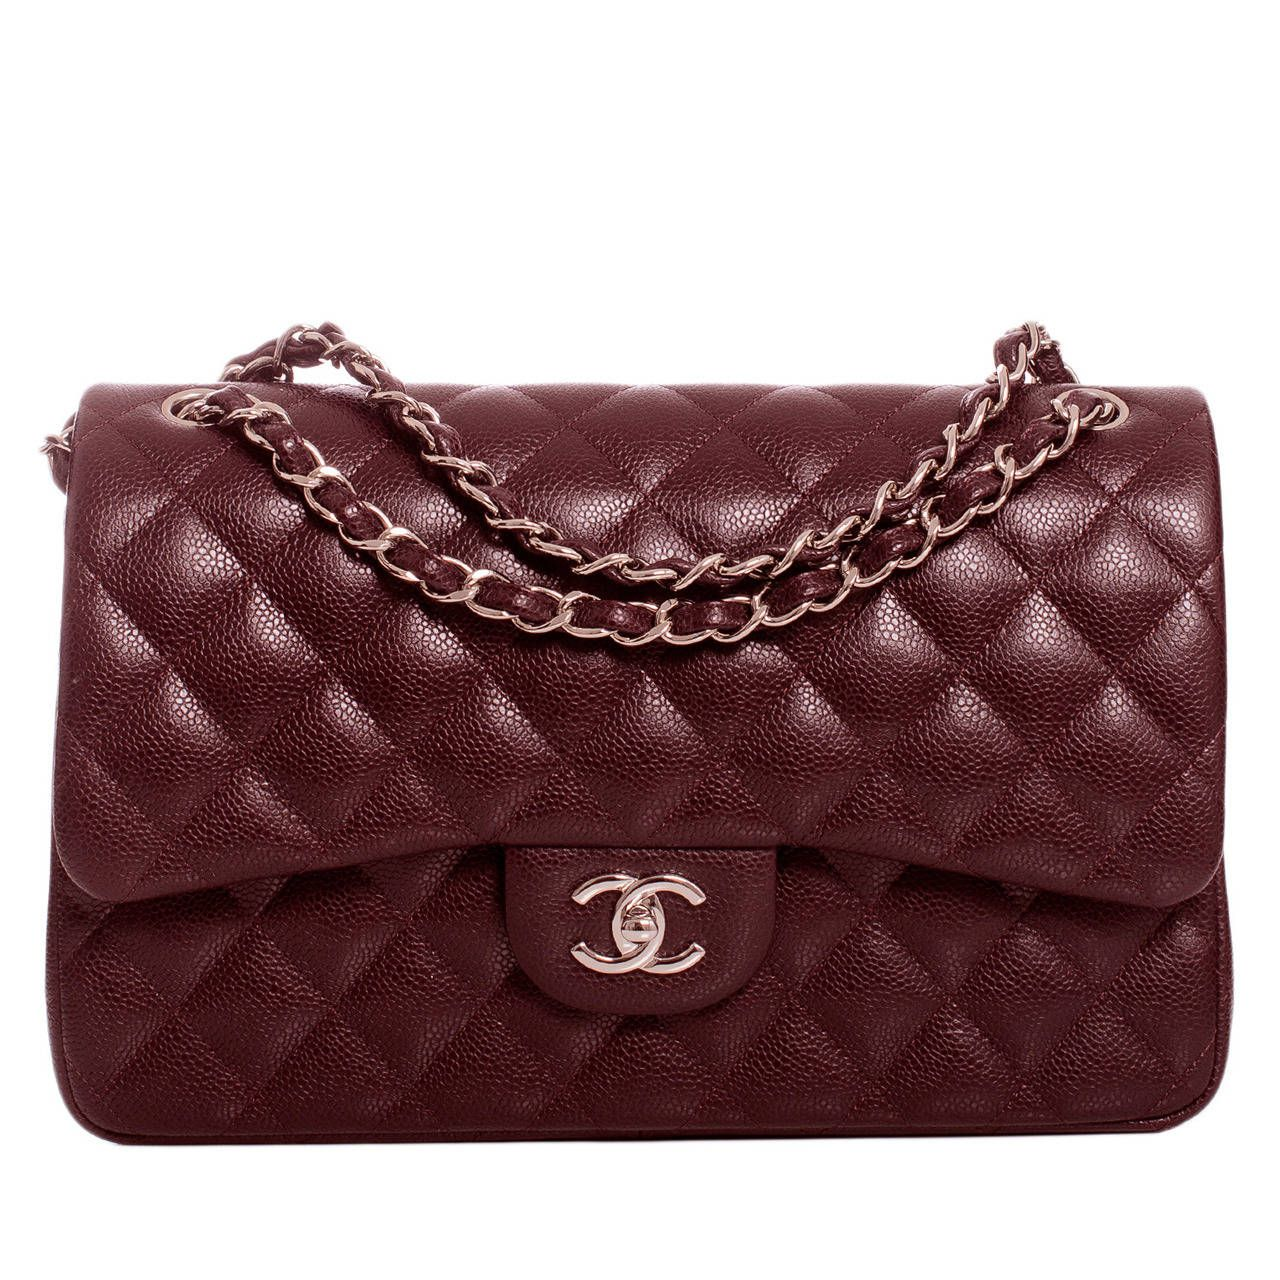 Leather quilted handbags and purses - Chanel Burgundy Quilted Caviar Jumbo Classic 2 55 Double Flap Bag From A Collection Of Rare